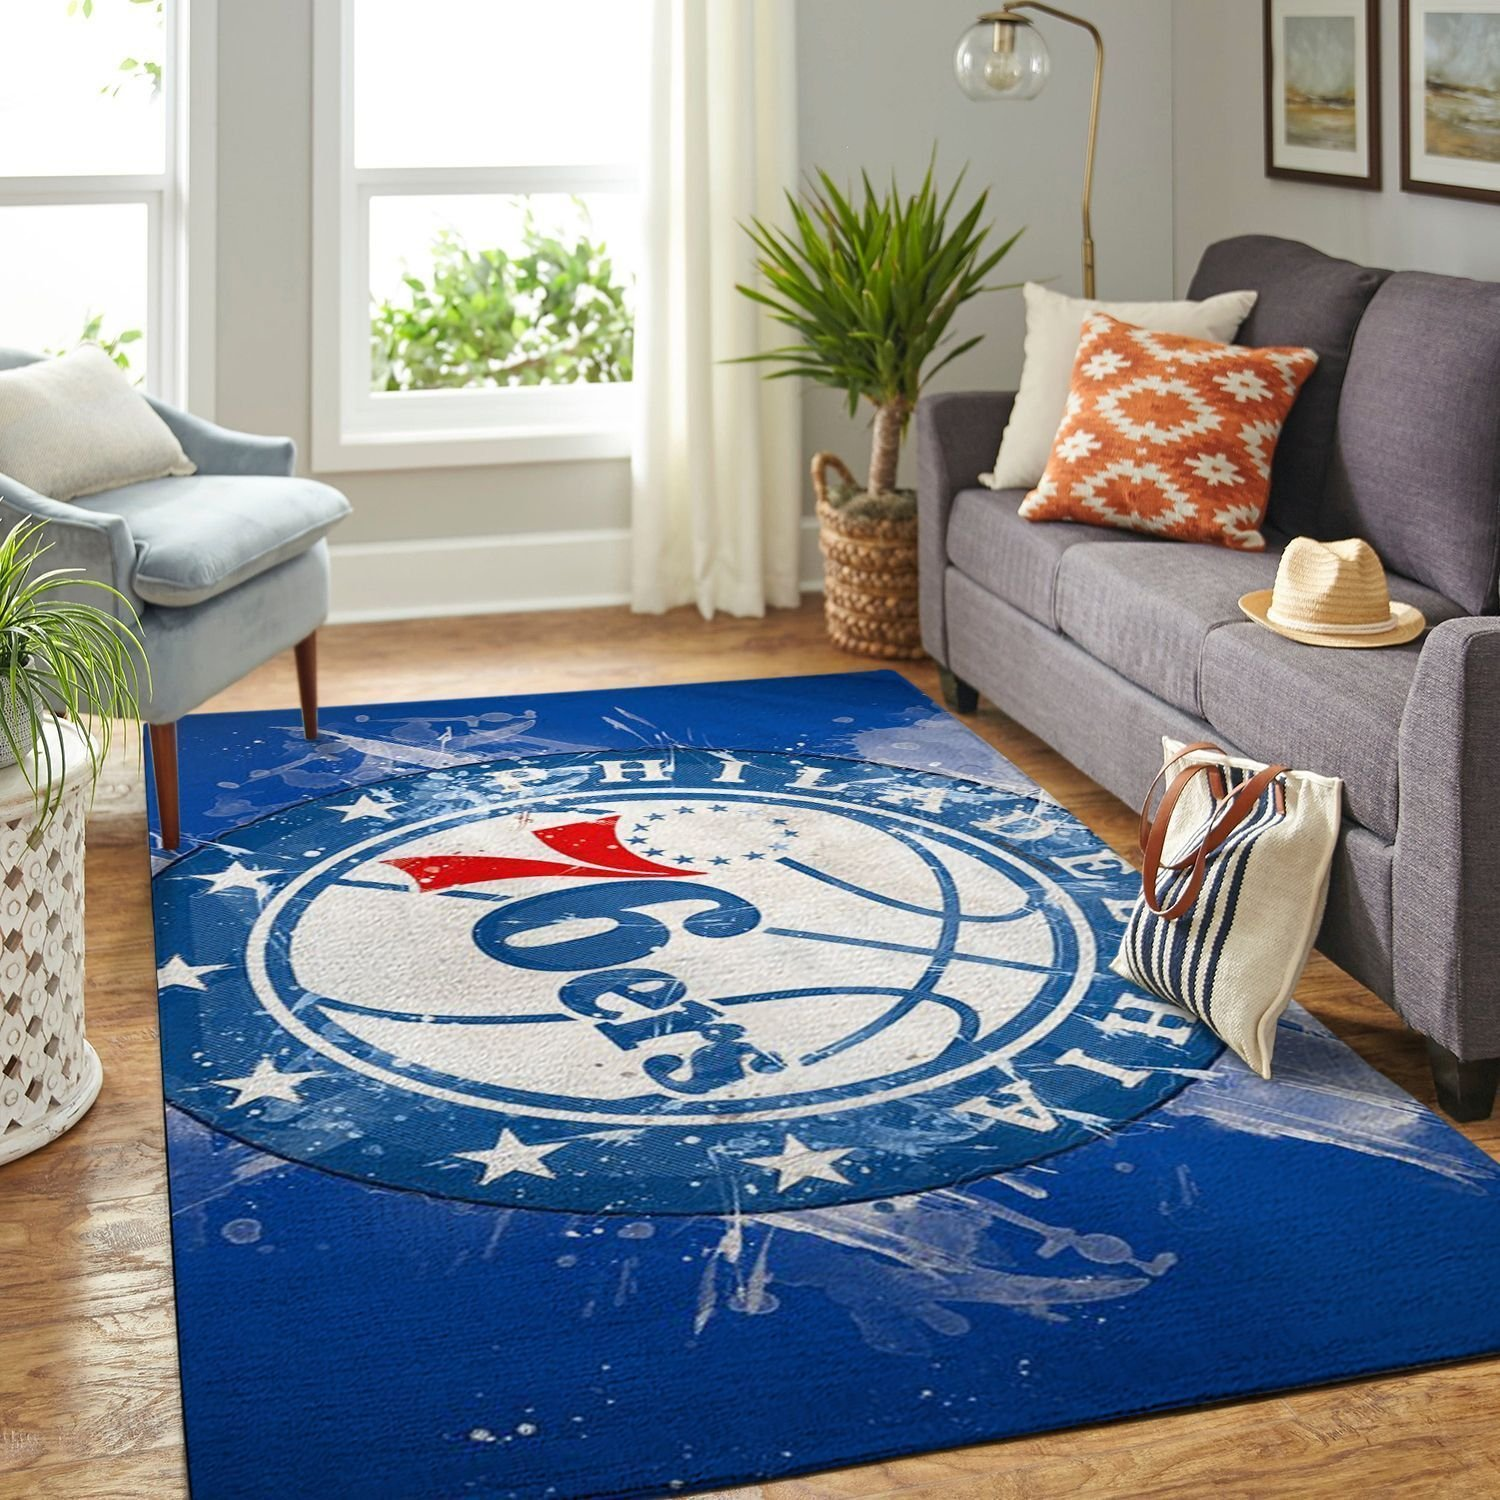 Amazon Philadelphia 76ers Living Room Area No4484 Rug